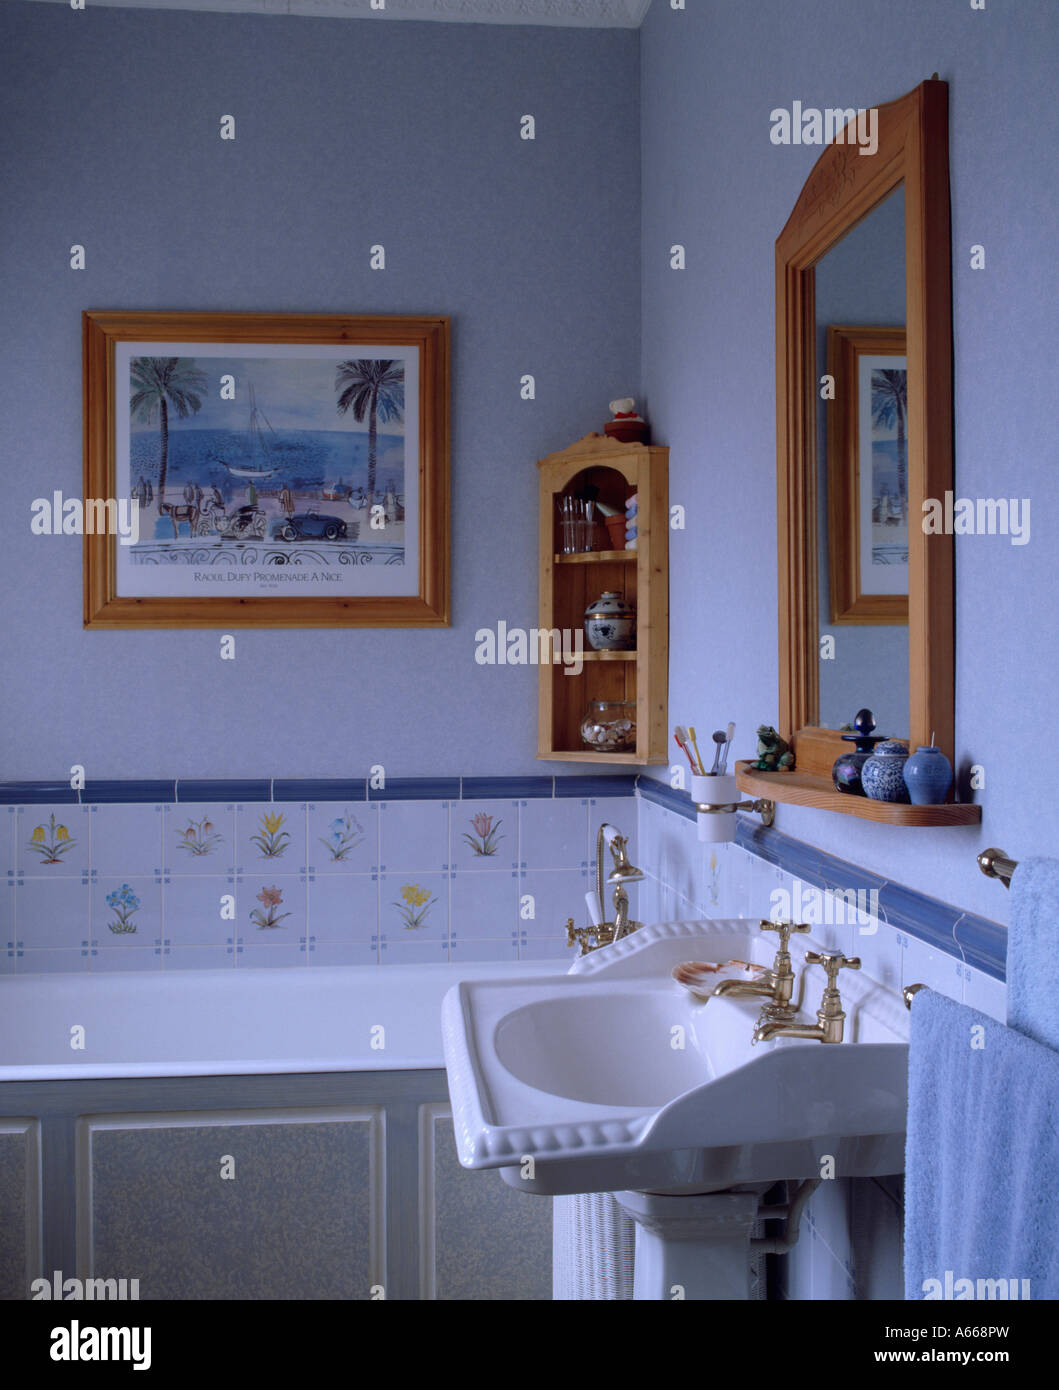 Outstanding Small Pastel Blue Bathroom With White Basin Stock Photo Download Free Architecture Designs Ferenbritishbridgeorg